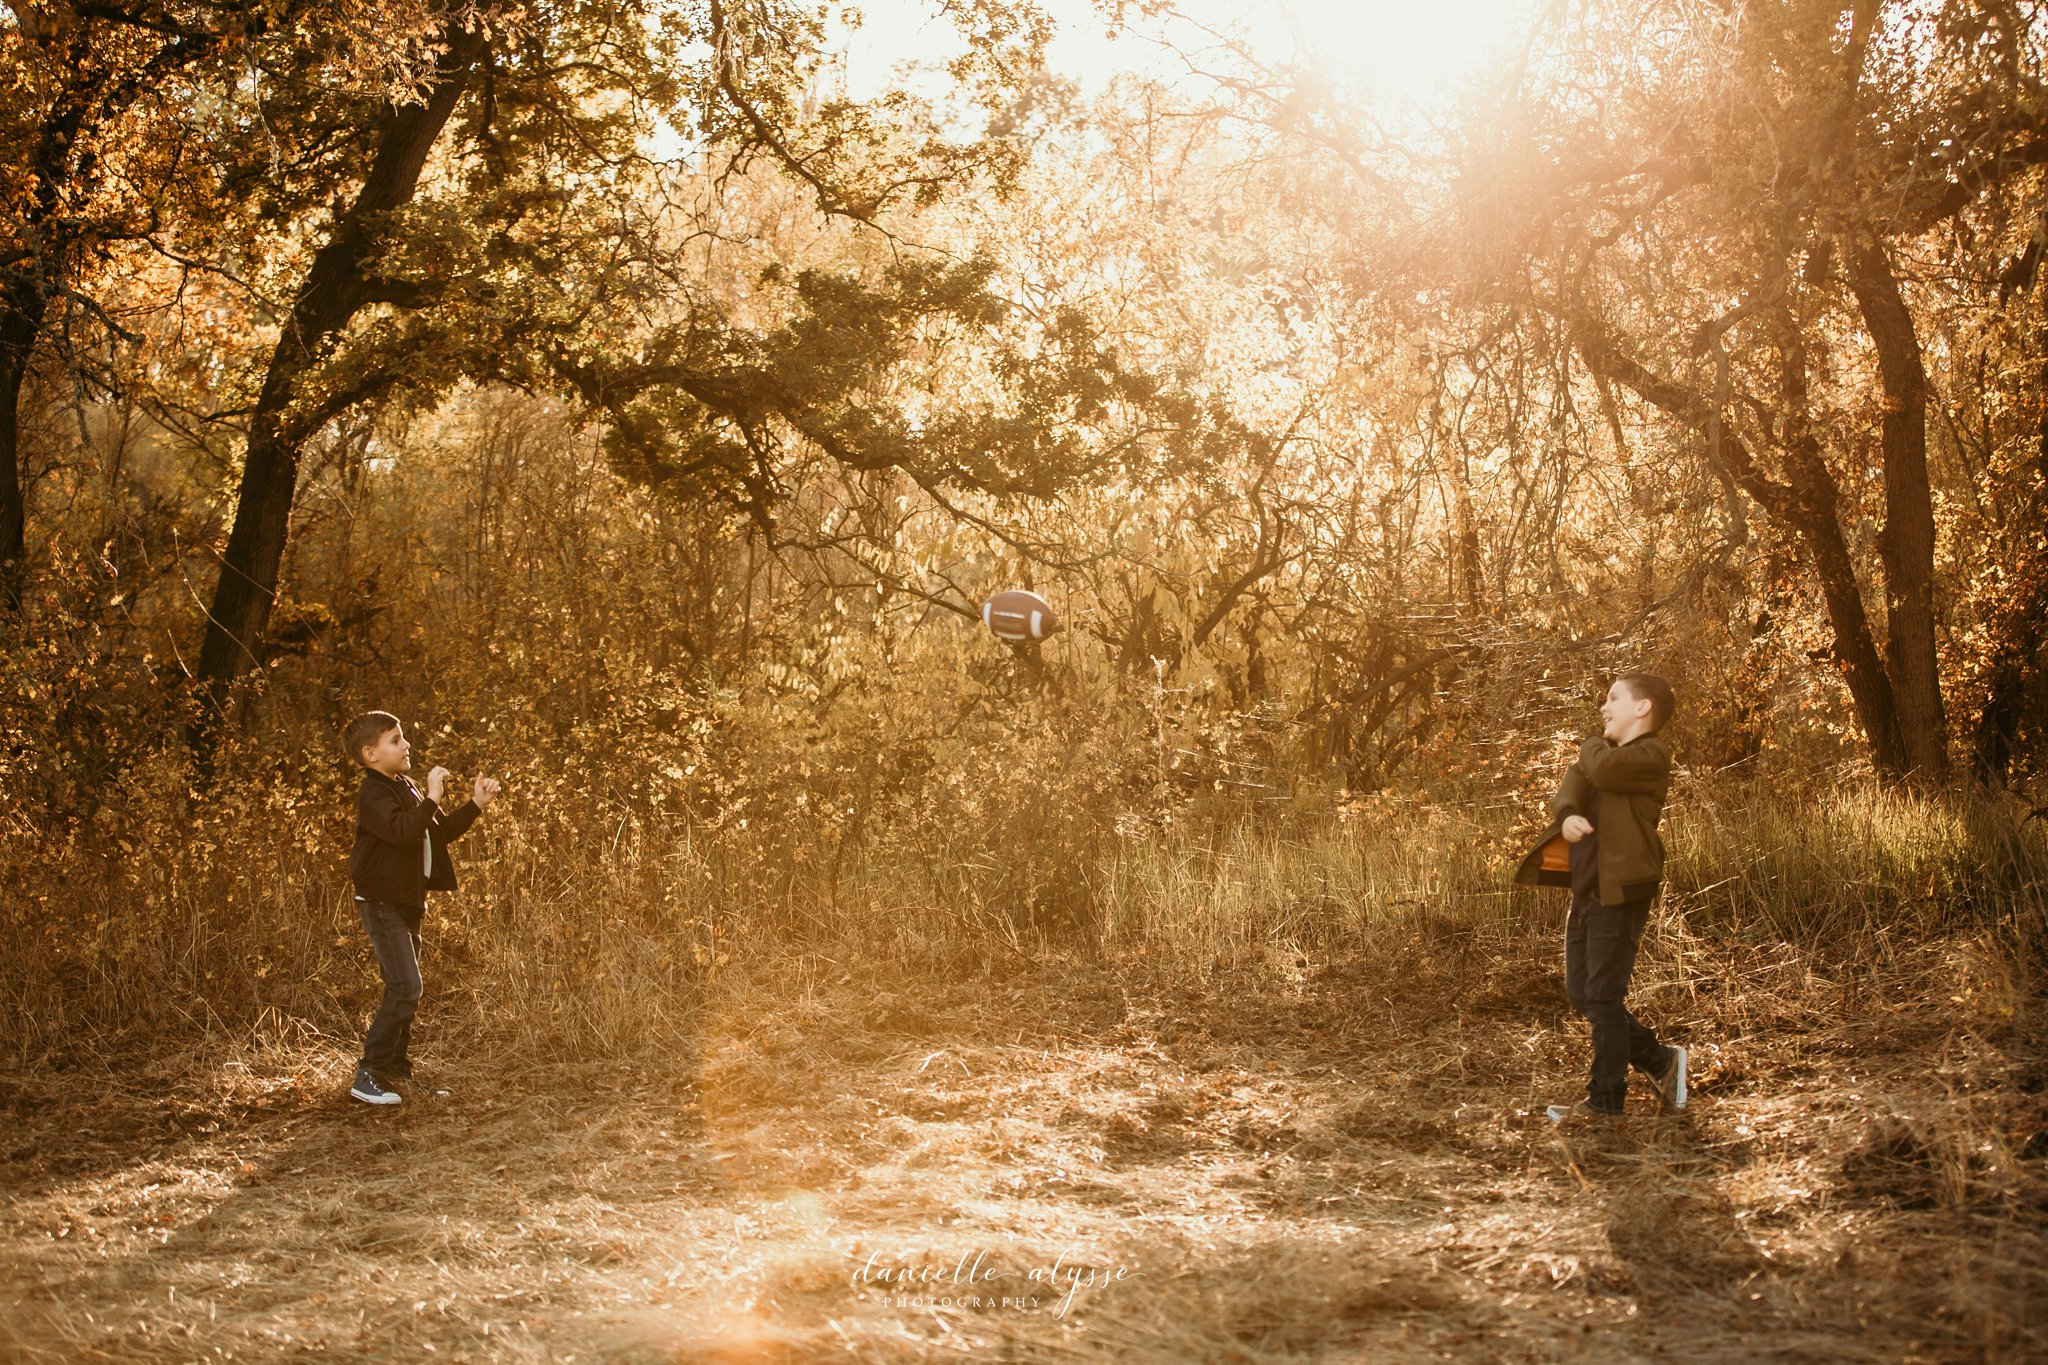 181125_fall_family_portrait_cosumnes_river_preserve_brittney_danielle_alysse_photography_11_WEB.jpg